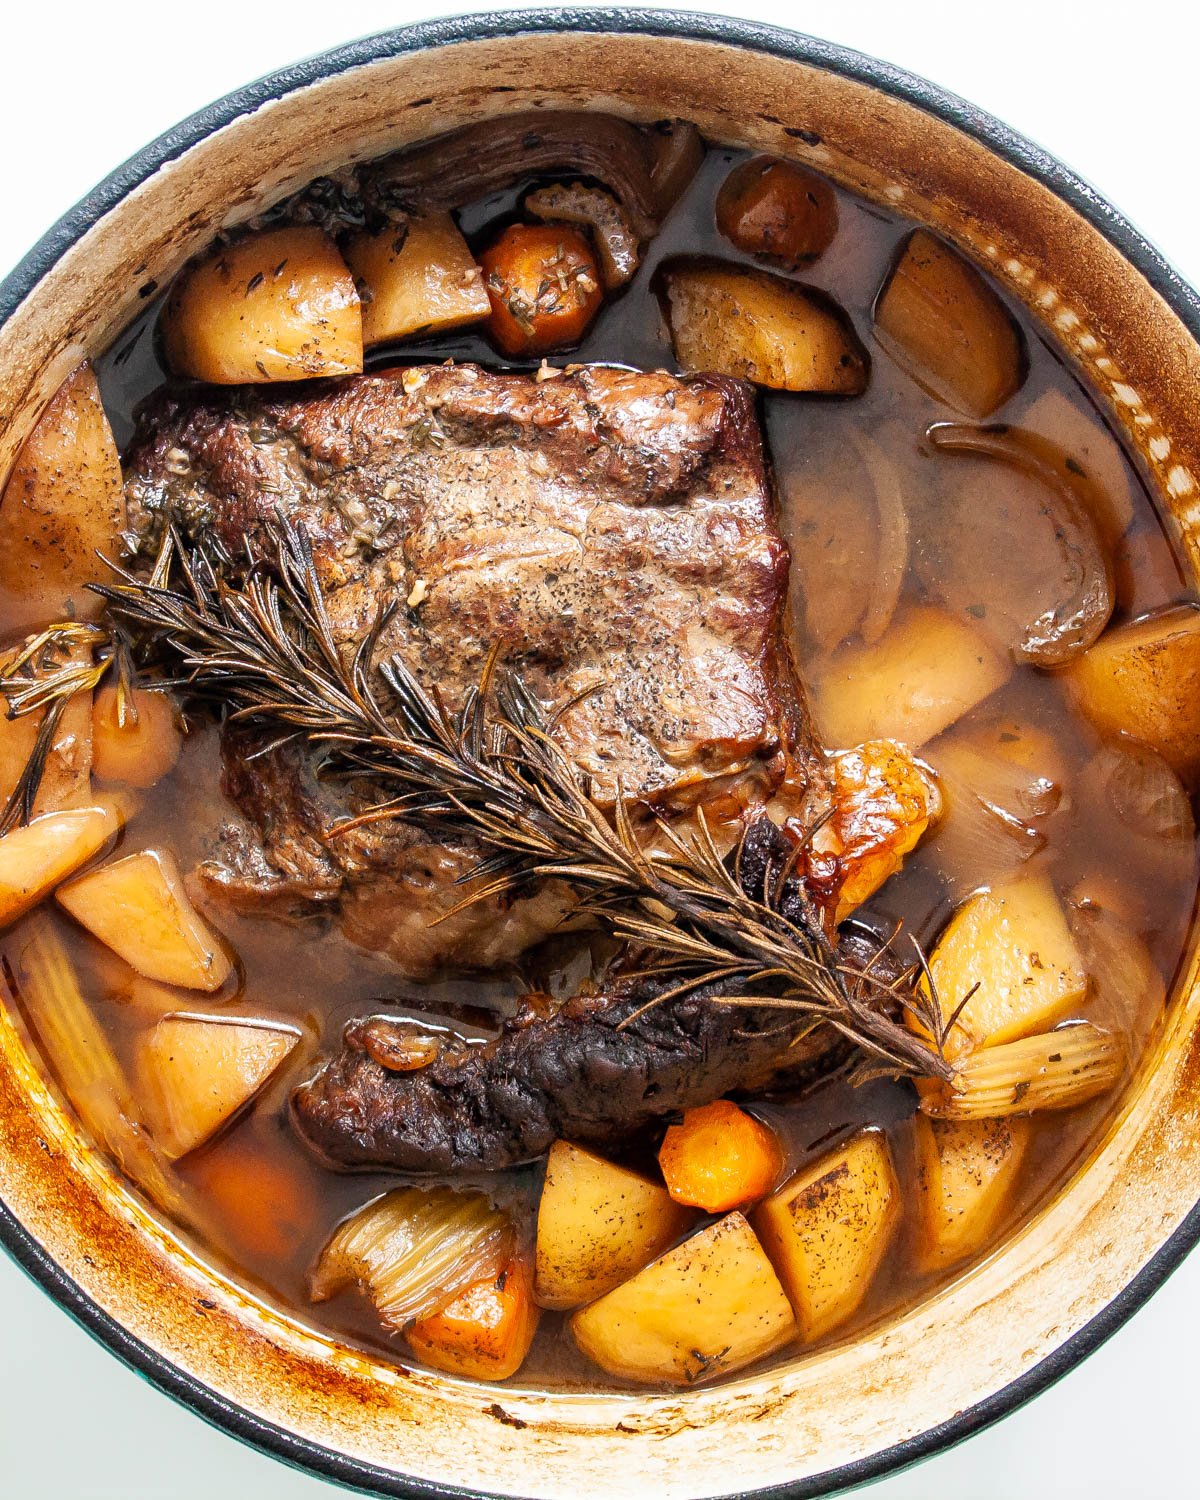 overhead of a roast in a large pot with carrots and potatoes